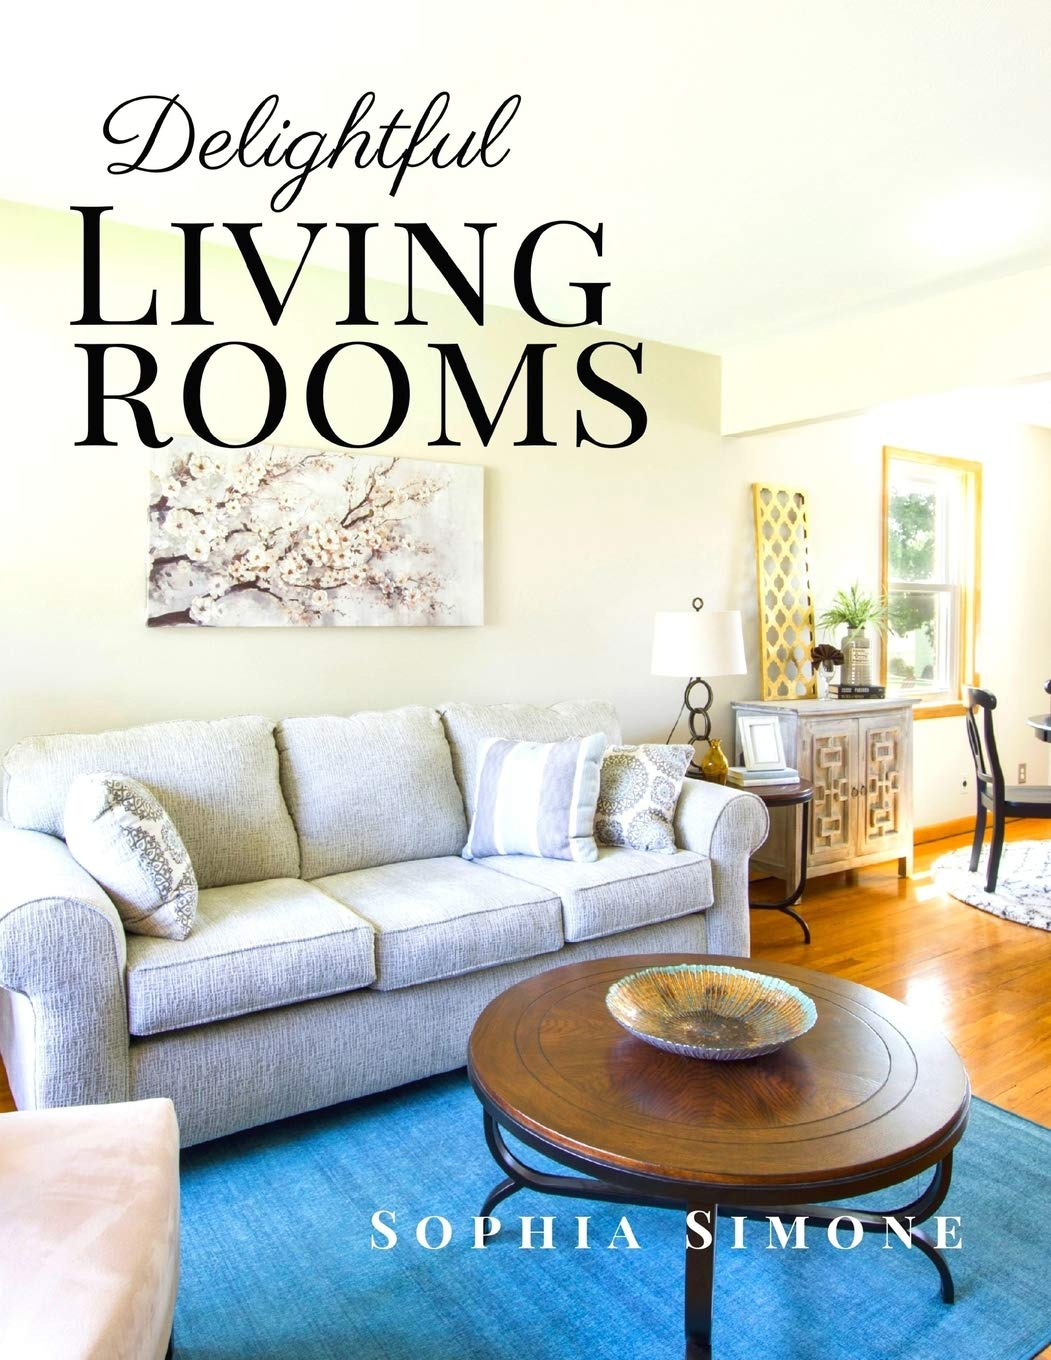 Delightful Living Rooms: A Beautiful Modern Architecture Interior Décor Minimalist Picture Book Indoor Photography Coffee Table Photobook Home Design ... Luxury Ultra-Modern Parlors, Sitting Rooms.